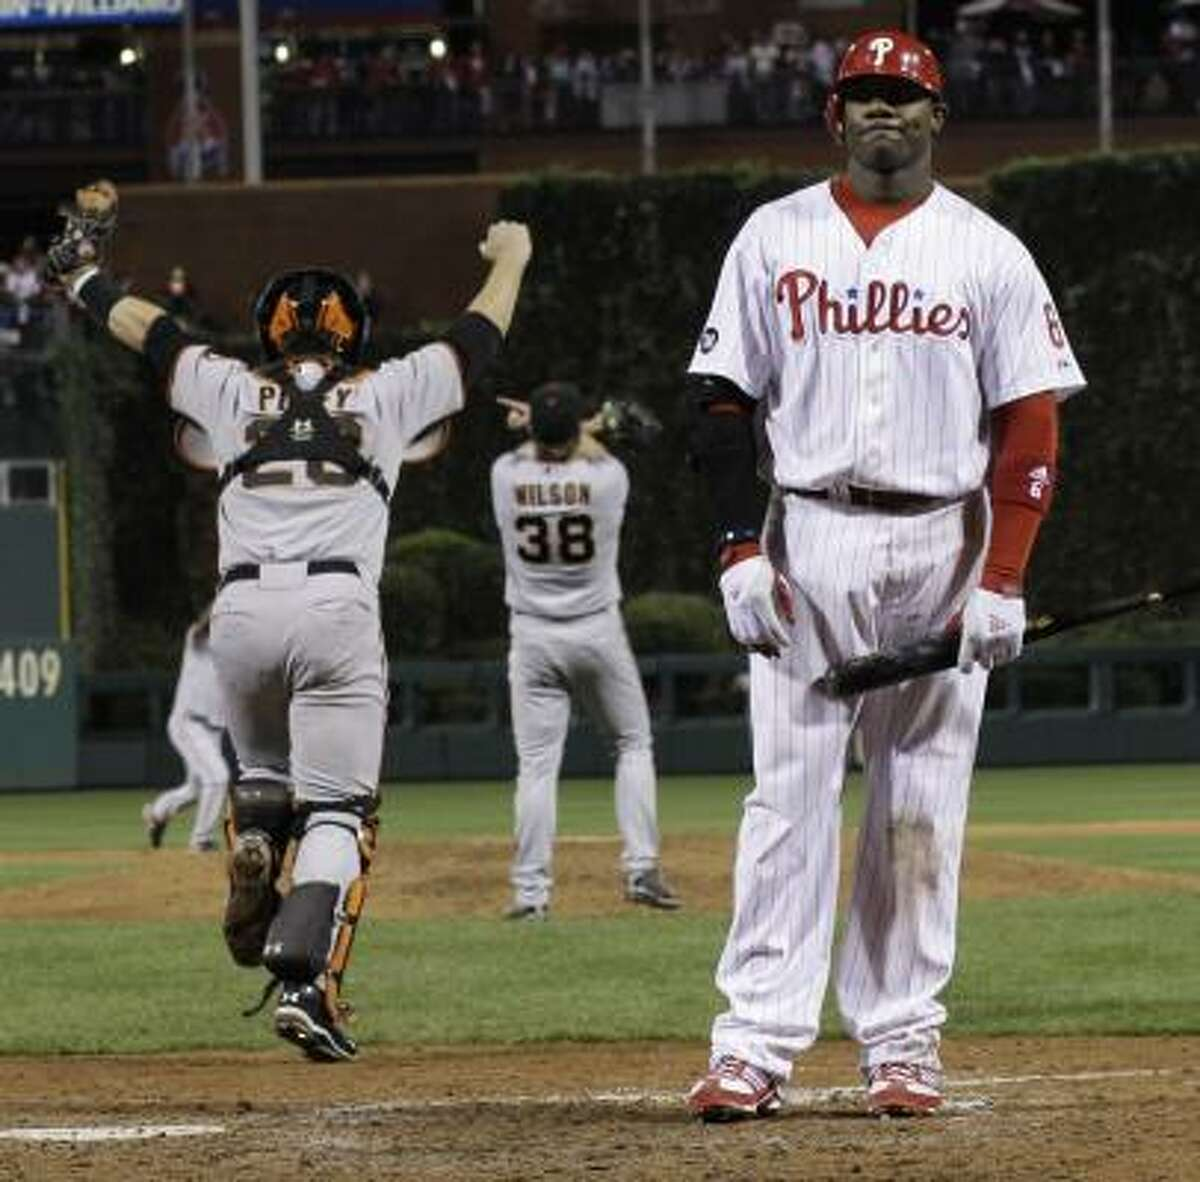 The San Francisco Giants rush the field as Philadelphia Phillies' Ryan Howard stands dejected, as he will not be going to the World Series.